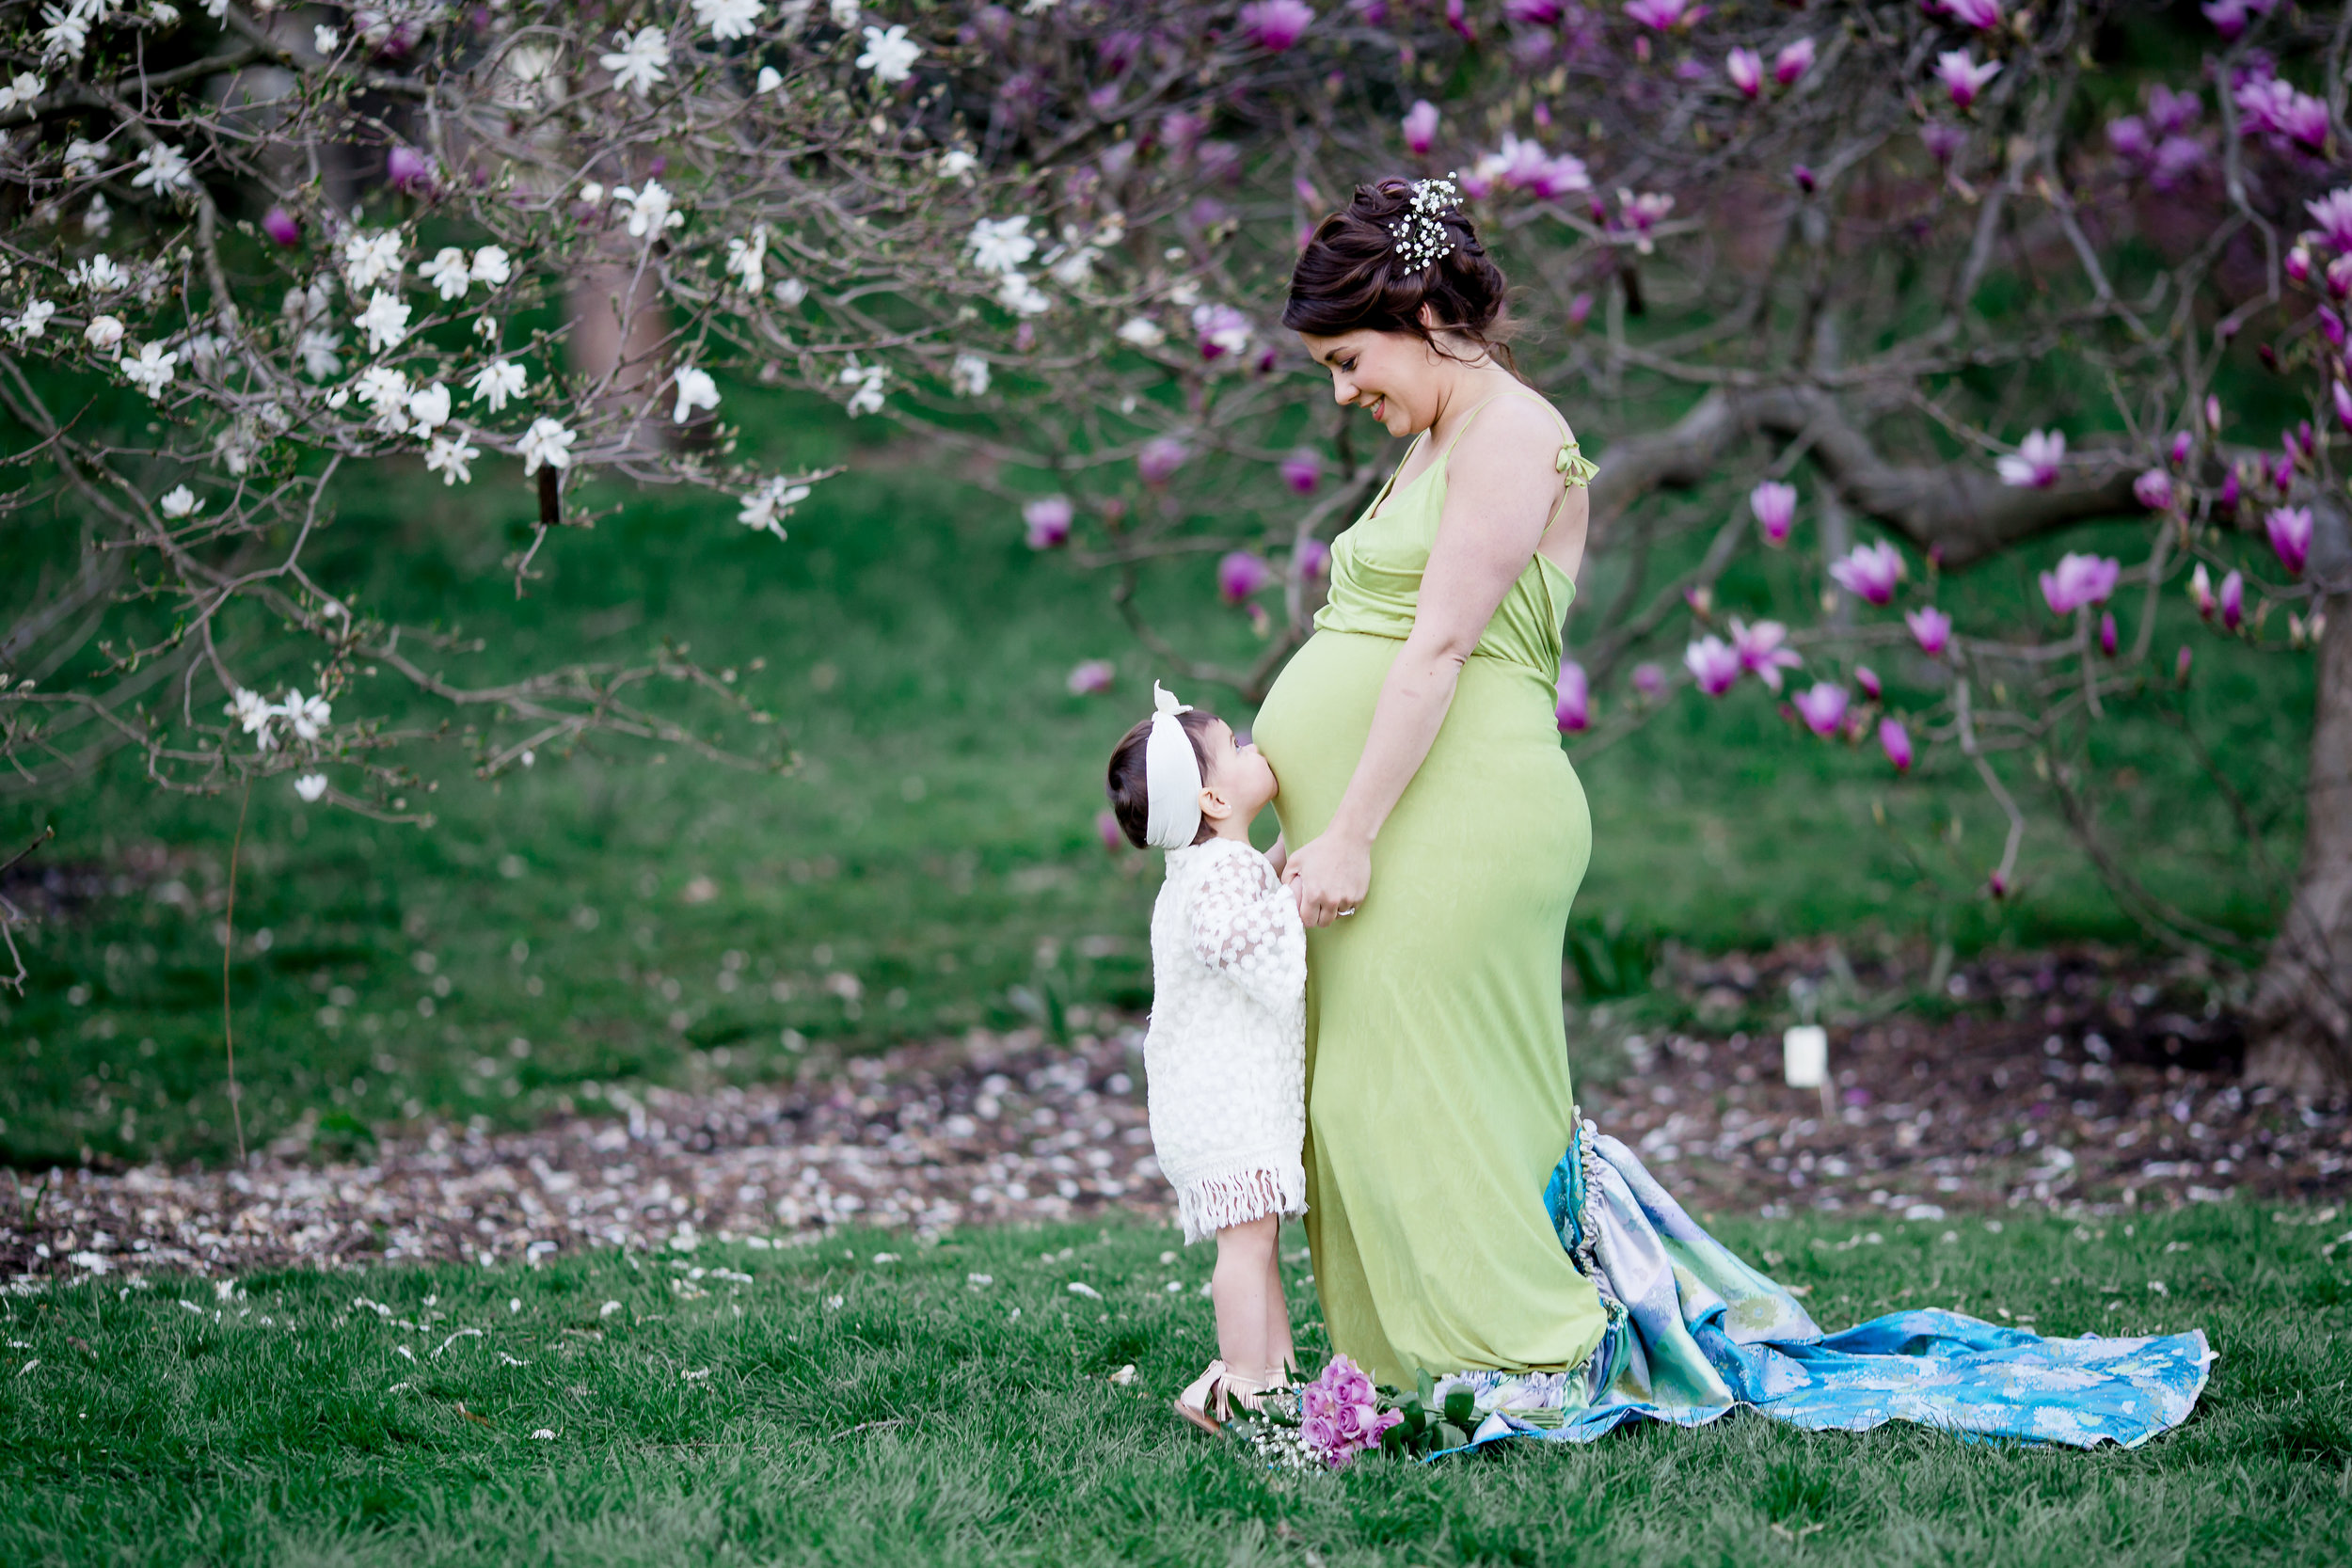 pregnant mom with older child kissing belly and mom looking at child with flowers in background